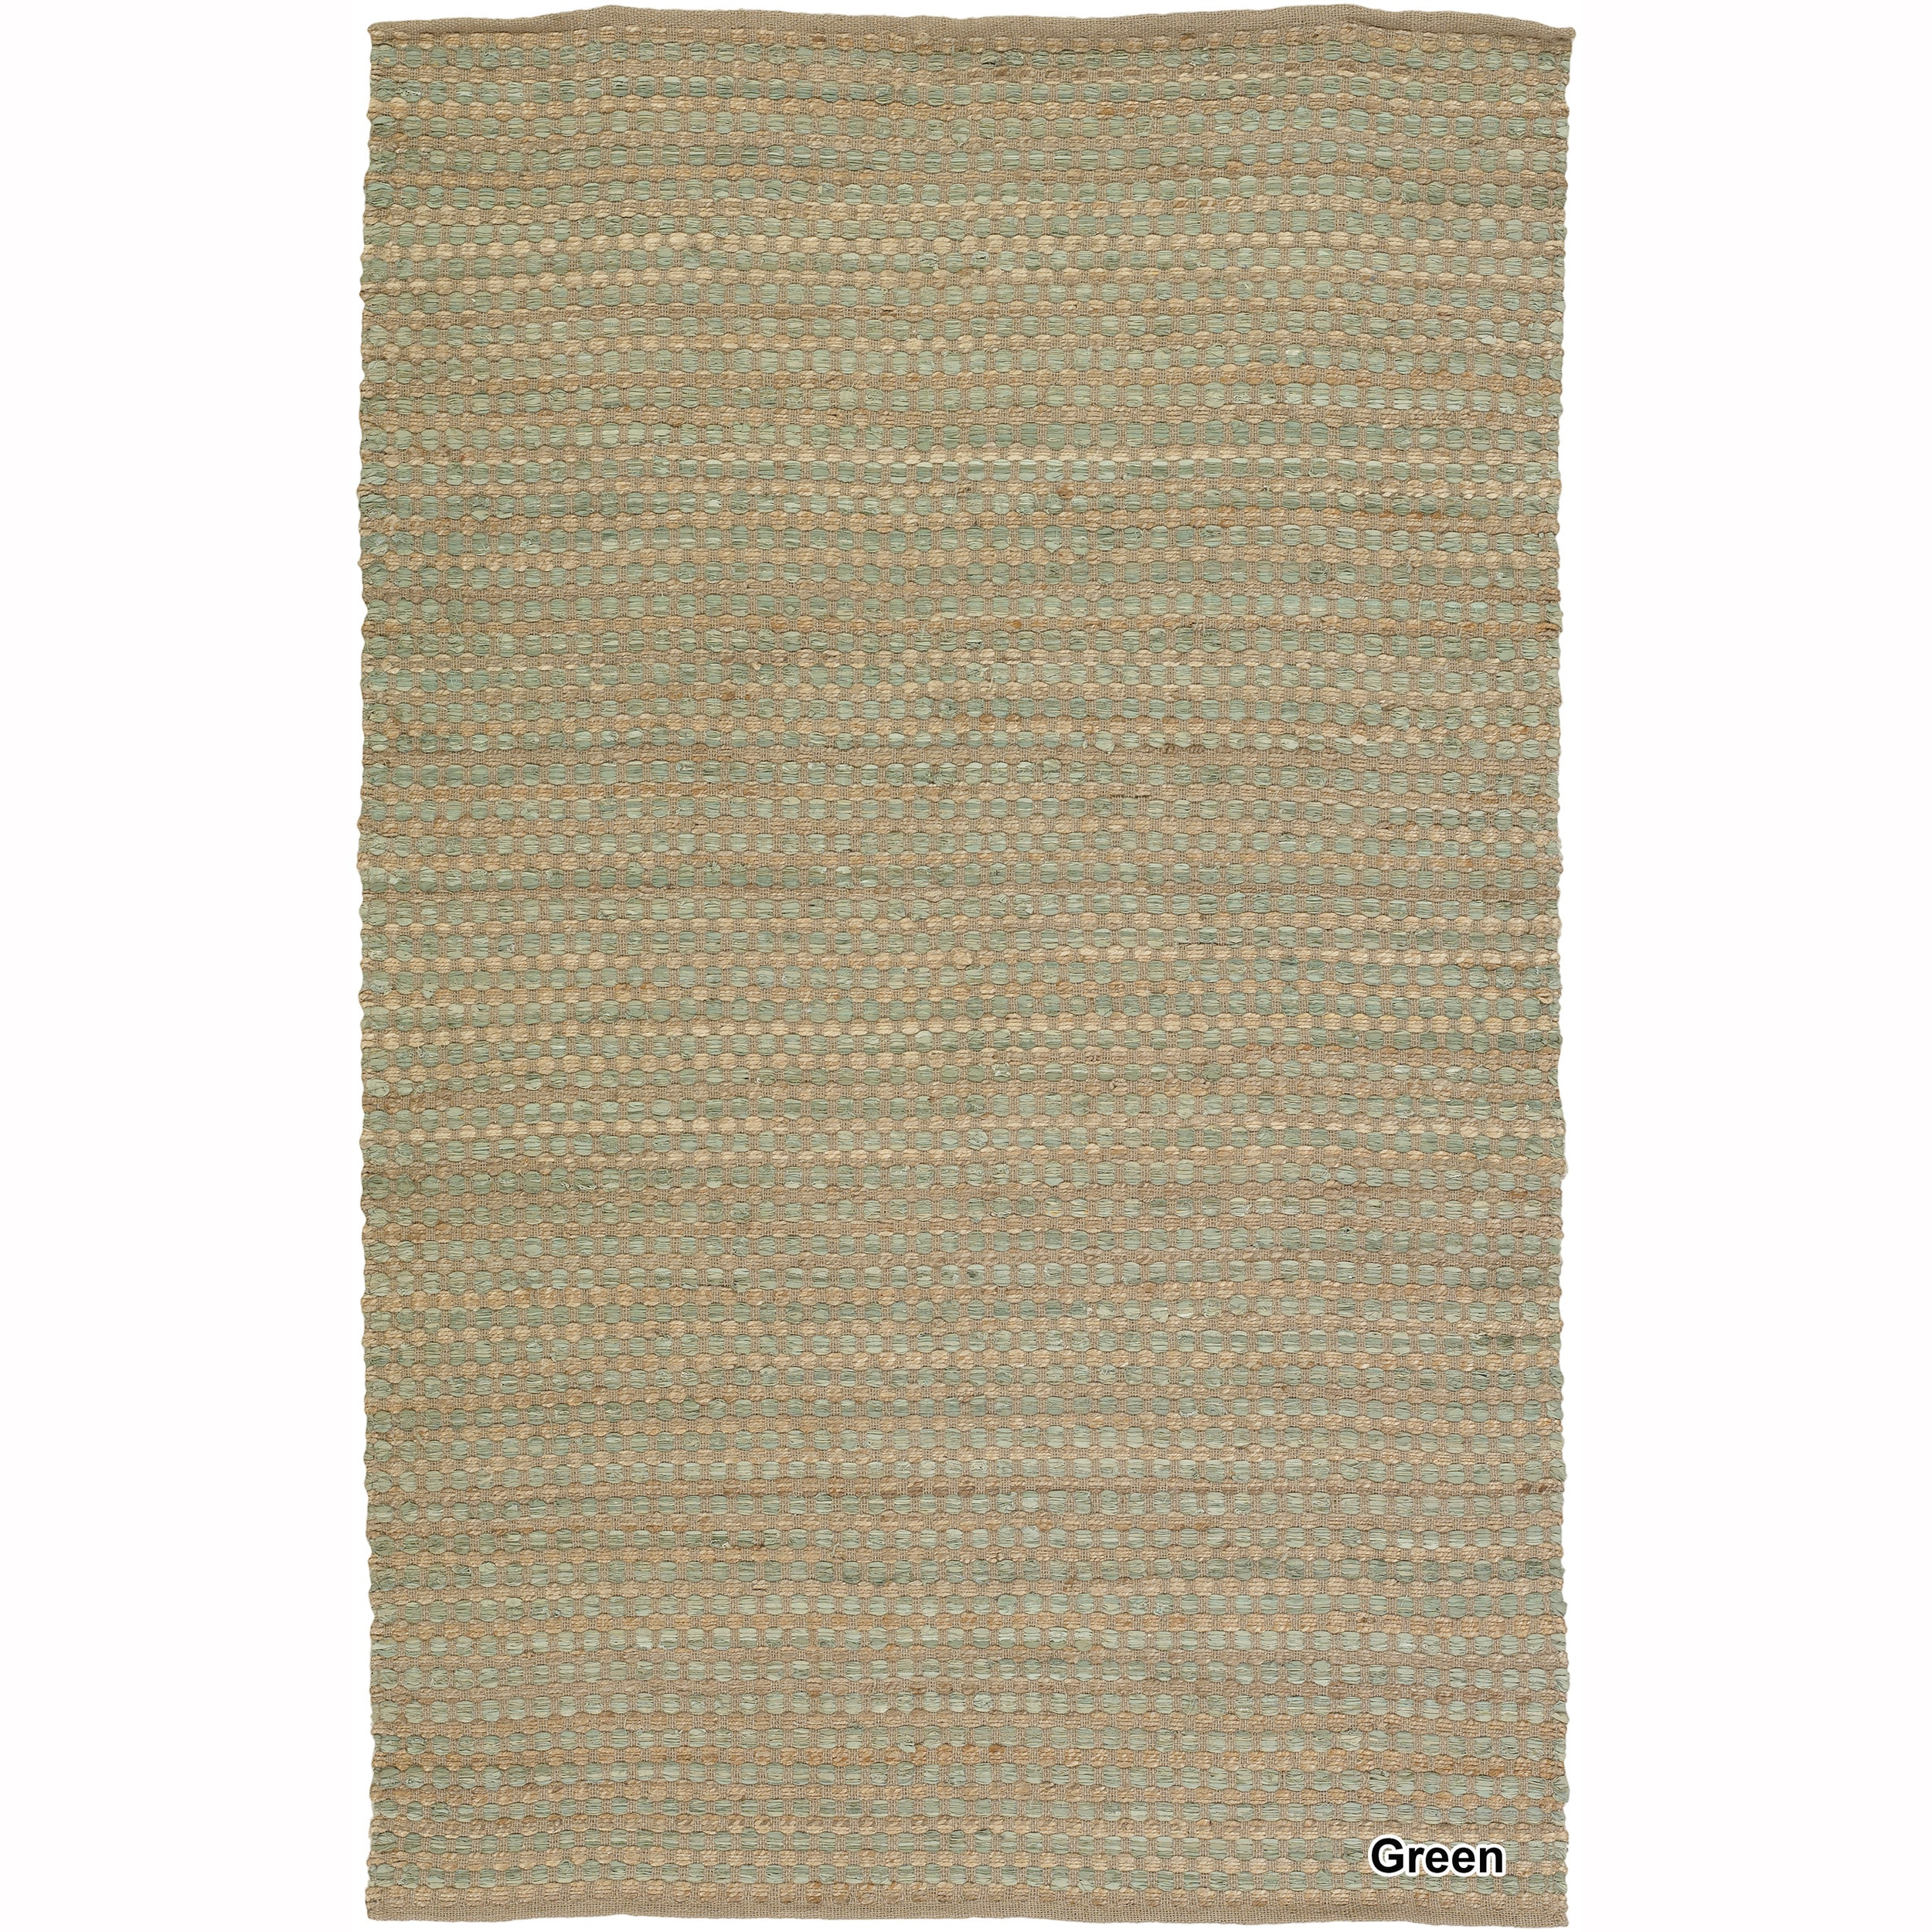 Artist S Loom Flatweave Contemporary Solid Pattern Cotton Jute Rug 7 9 X10 6 7 9 X 10 6 Area Rugs Rugs Colorful Rugs